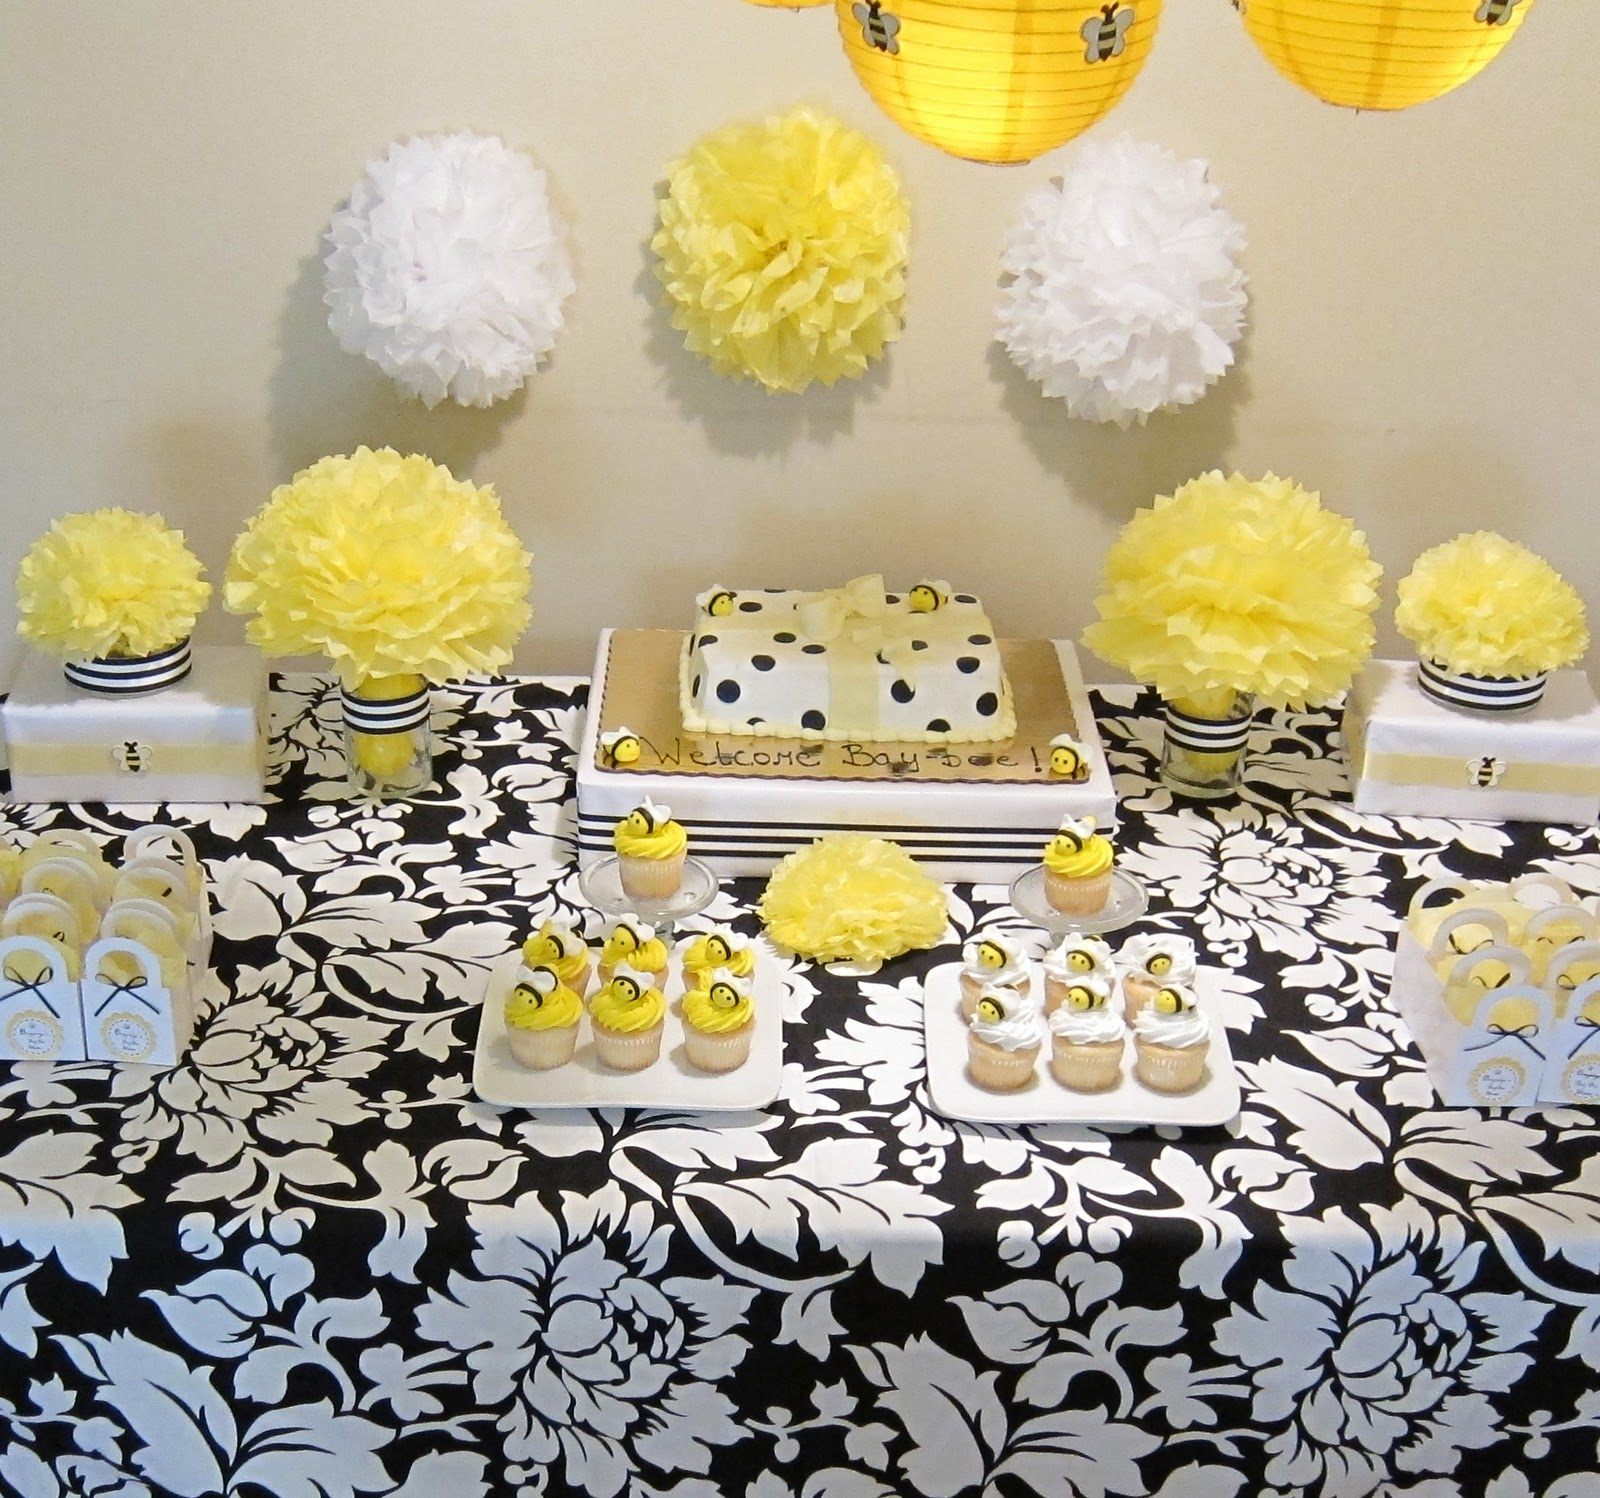 Baby shower bumble bee decorating ideas baby shower for Baby shower party decoration ideas